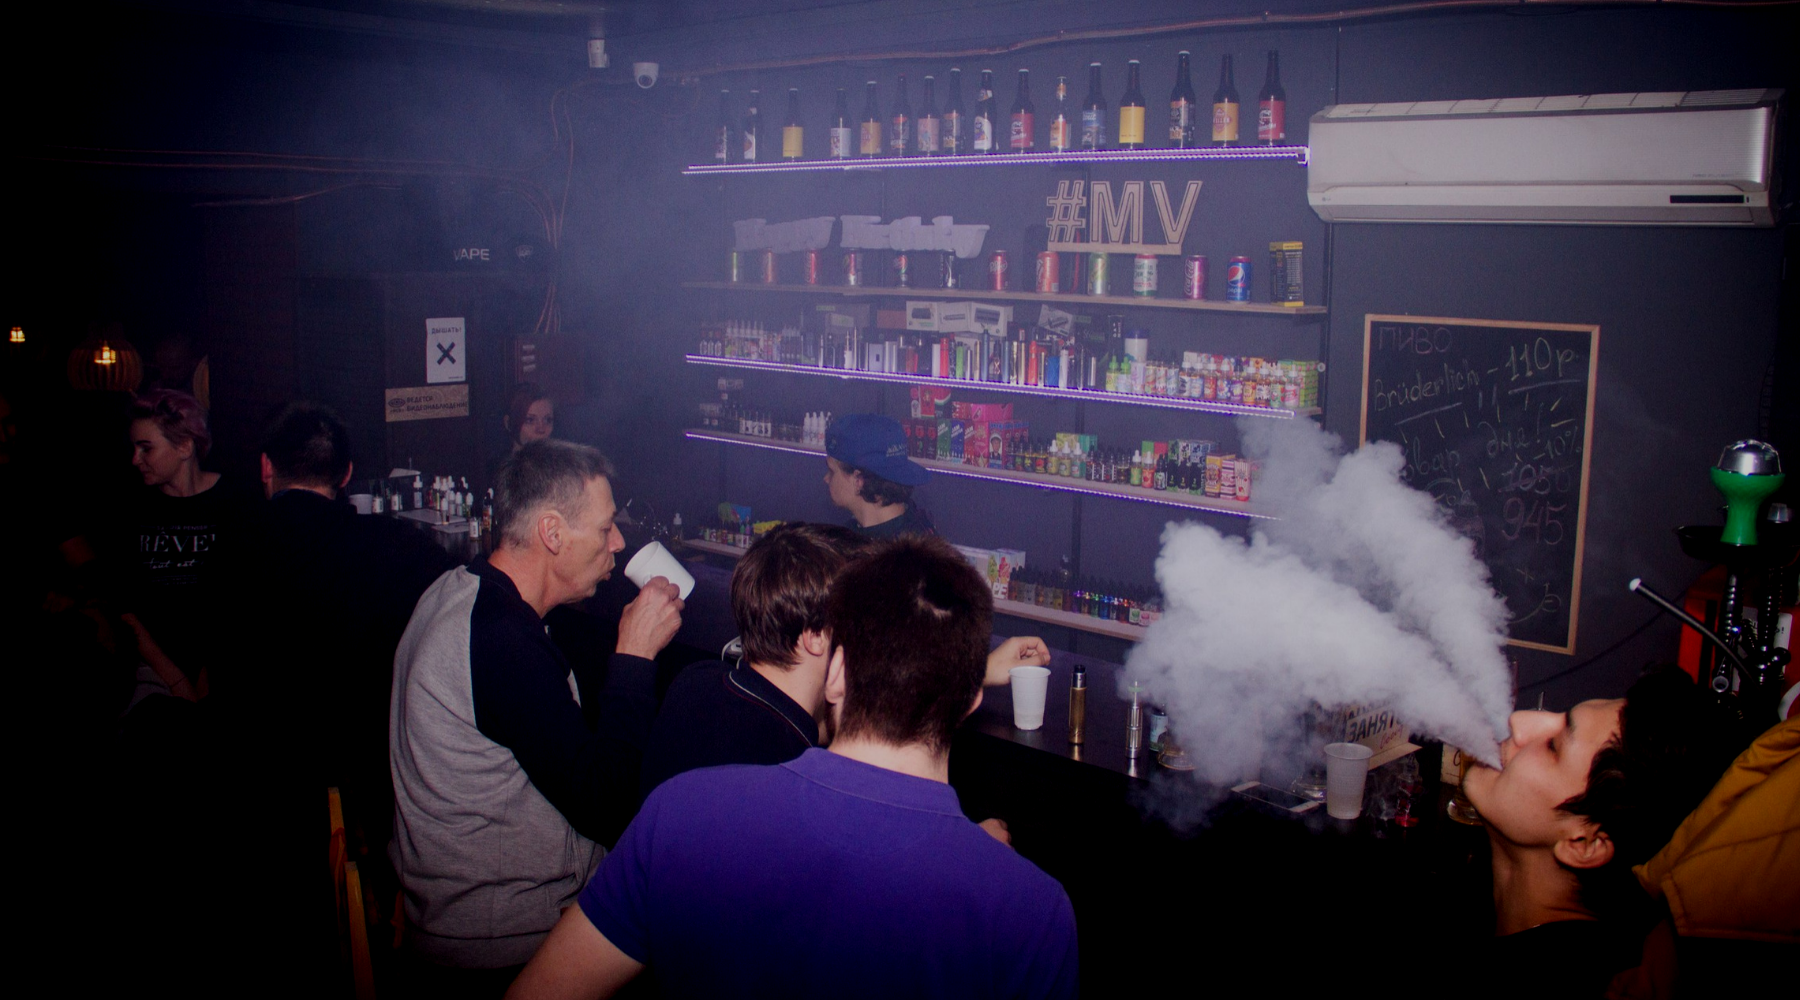 Vape Shop in Broxtowe, UK